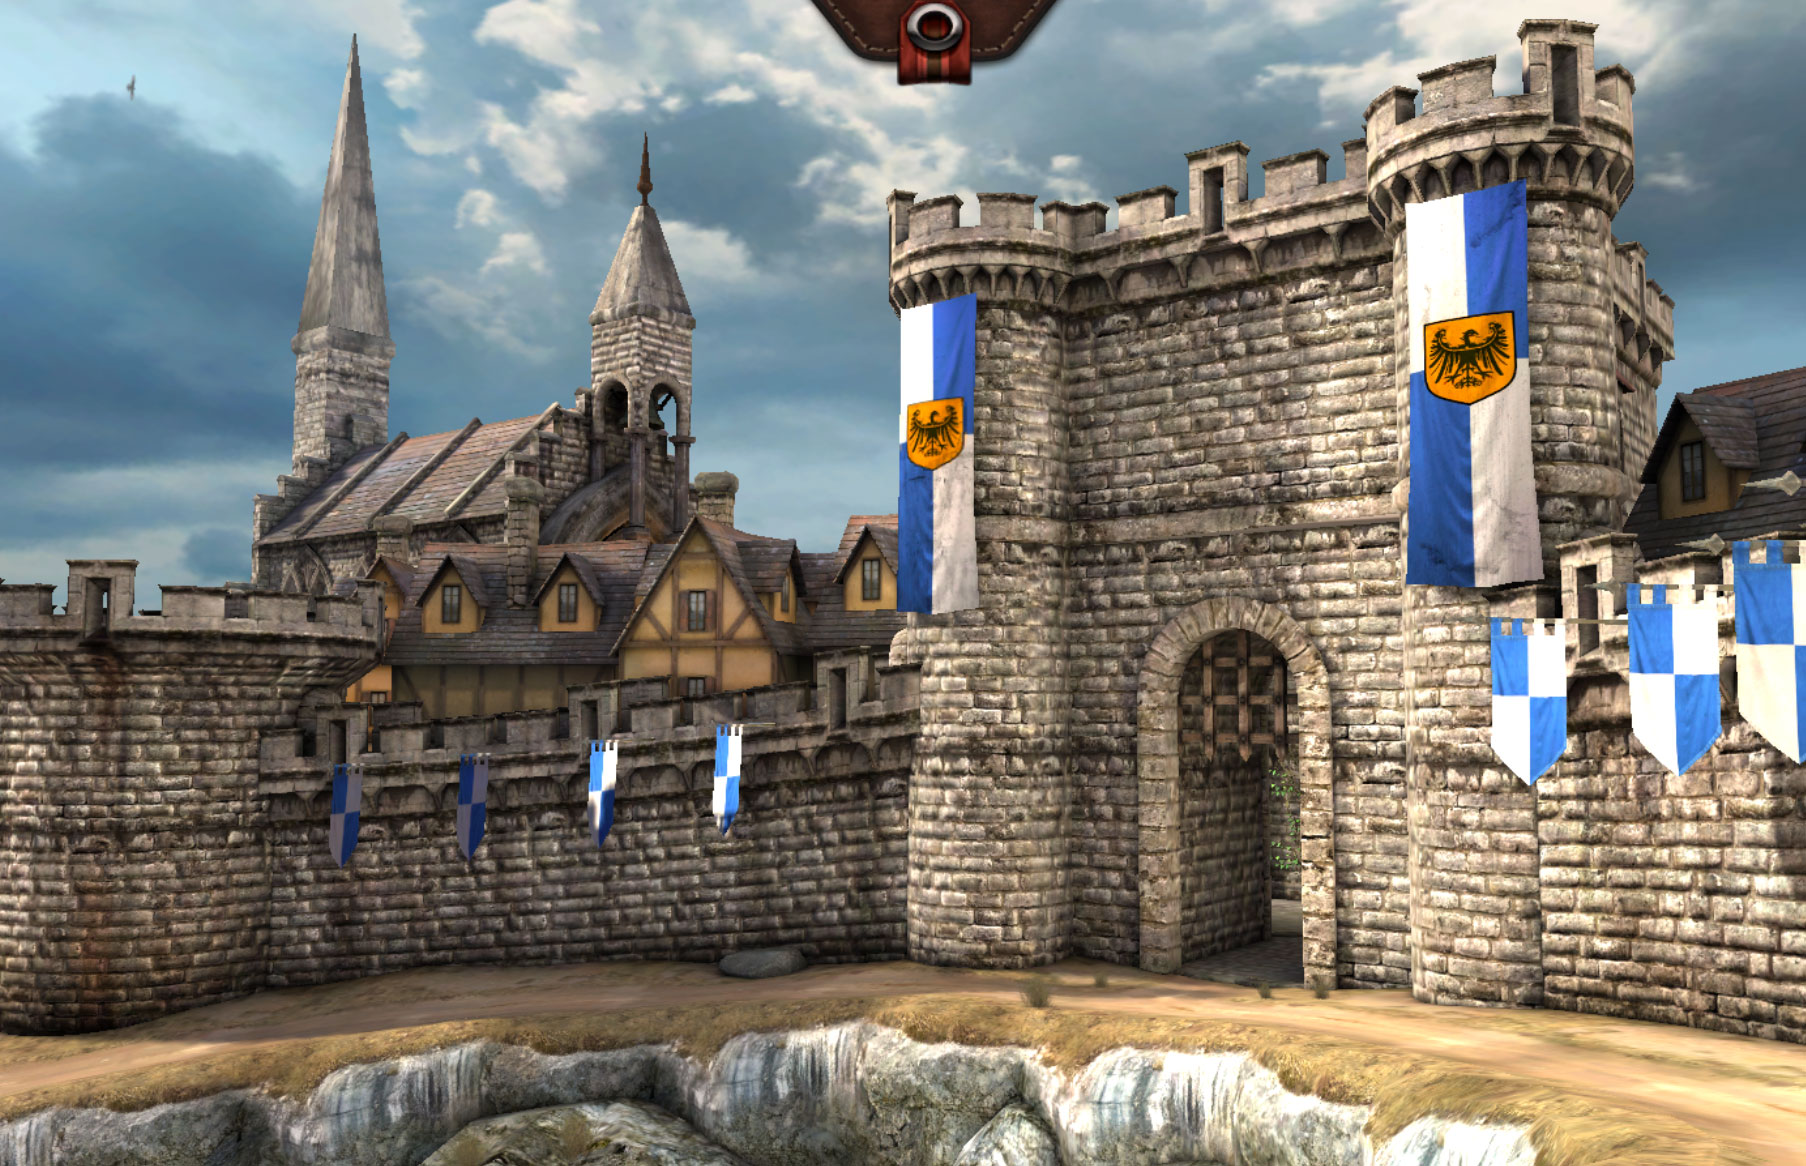 The Epic Citadel demo of Unreal Engine 3 running in a browser using high-speed JavaScript and WebGL.